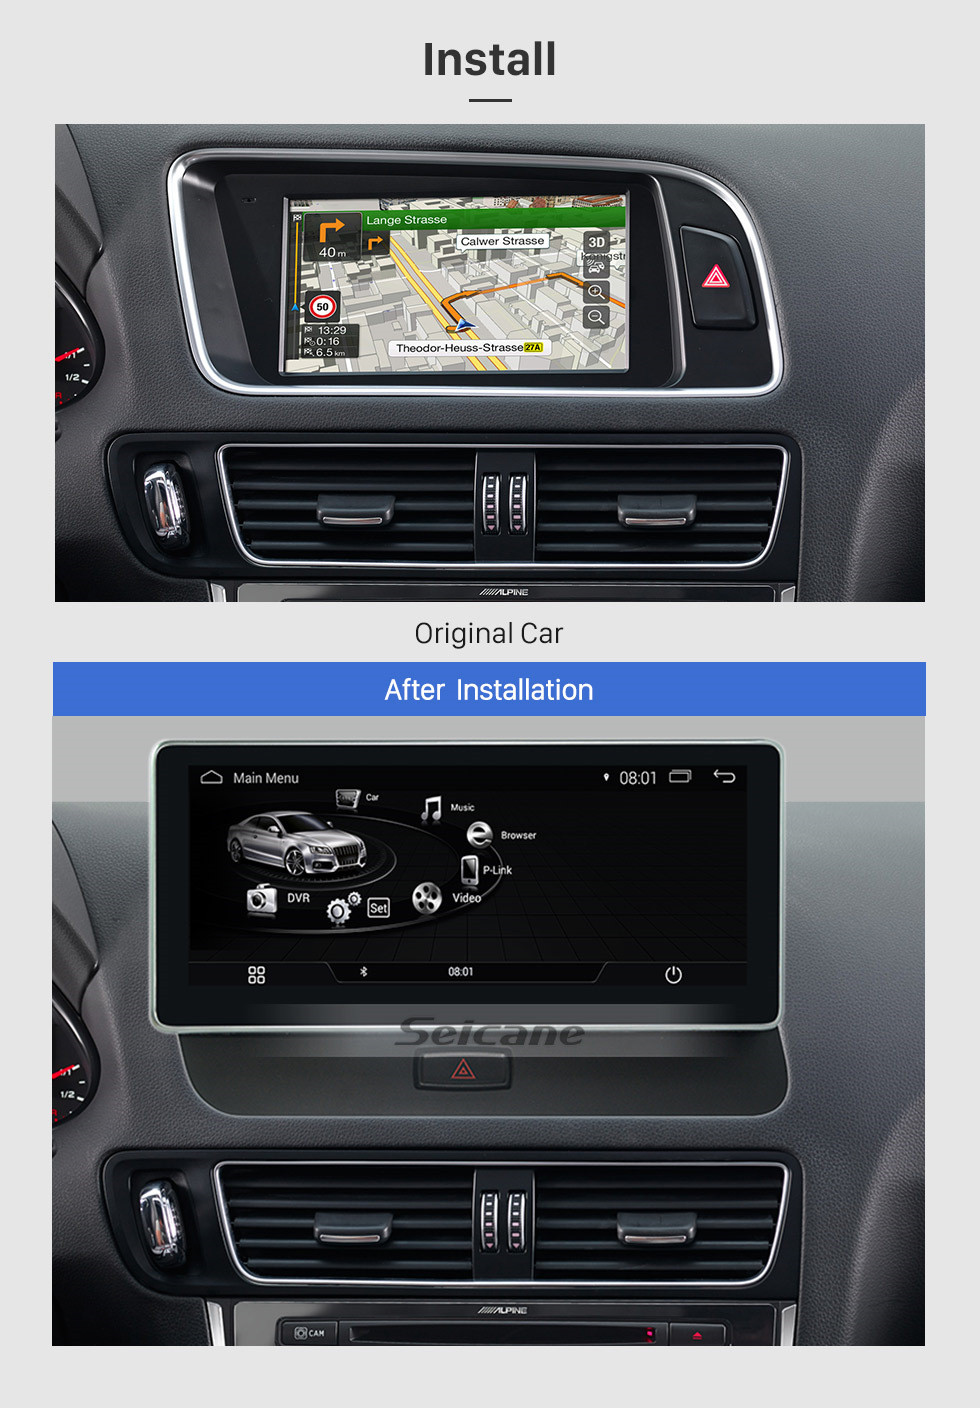 Seicane 10.25 inch 2009-2018 AUDI Q5 Left Hand Driving Car Android 9.0 Radio Touchscreen GPS Navigation auto Stereo Steering Wheel Control Bluetooth USB WIFI Carplay Rearview Camera 1080P